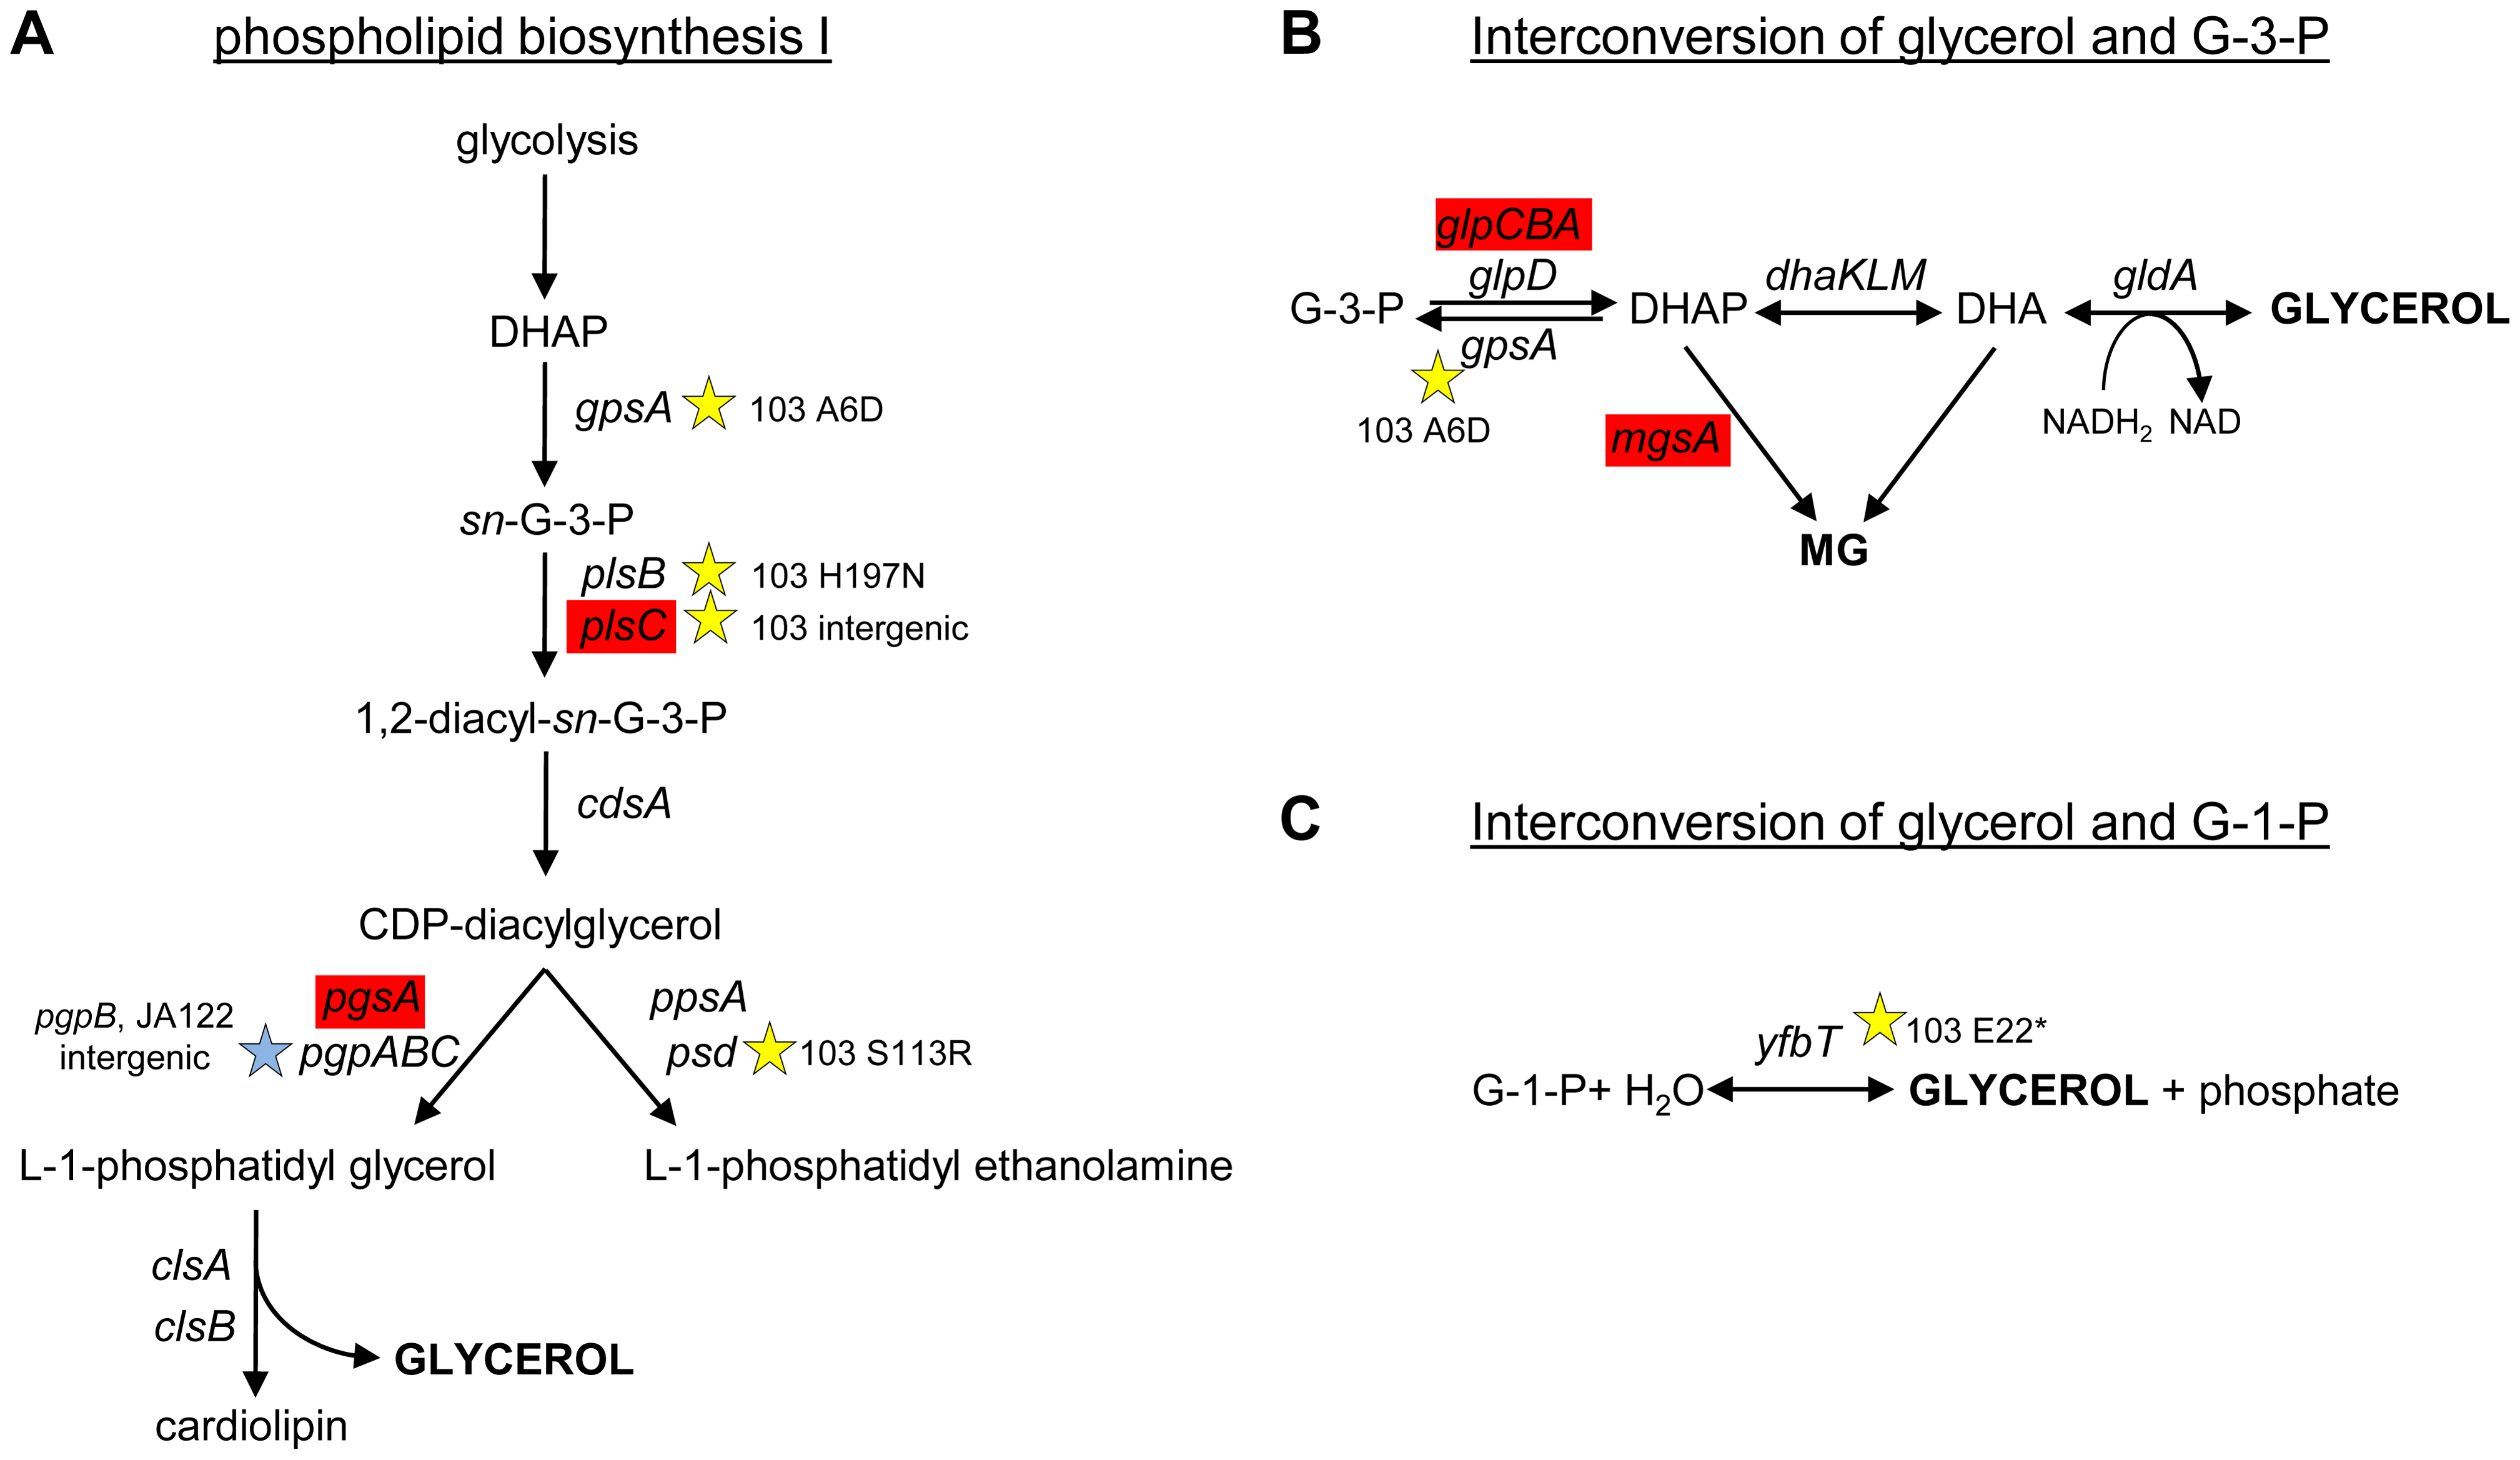 SNPs in genes involved phospholipid biosynthesis and that contribute to glycerol synthesis.